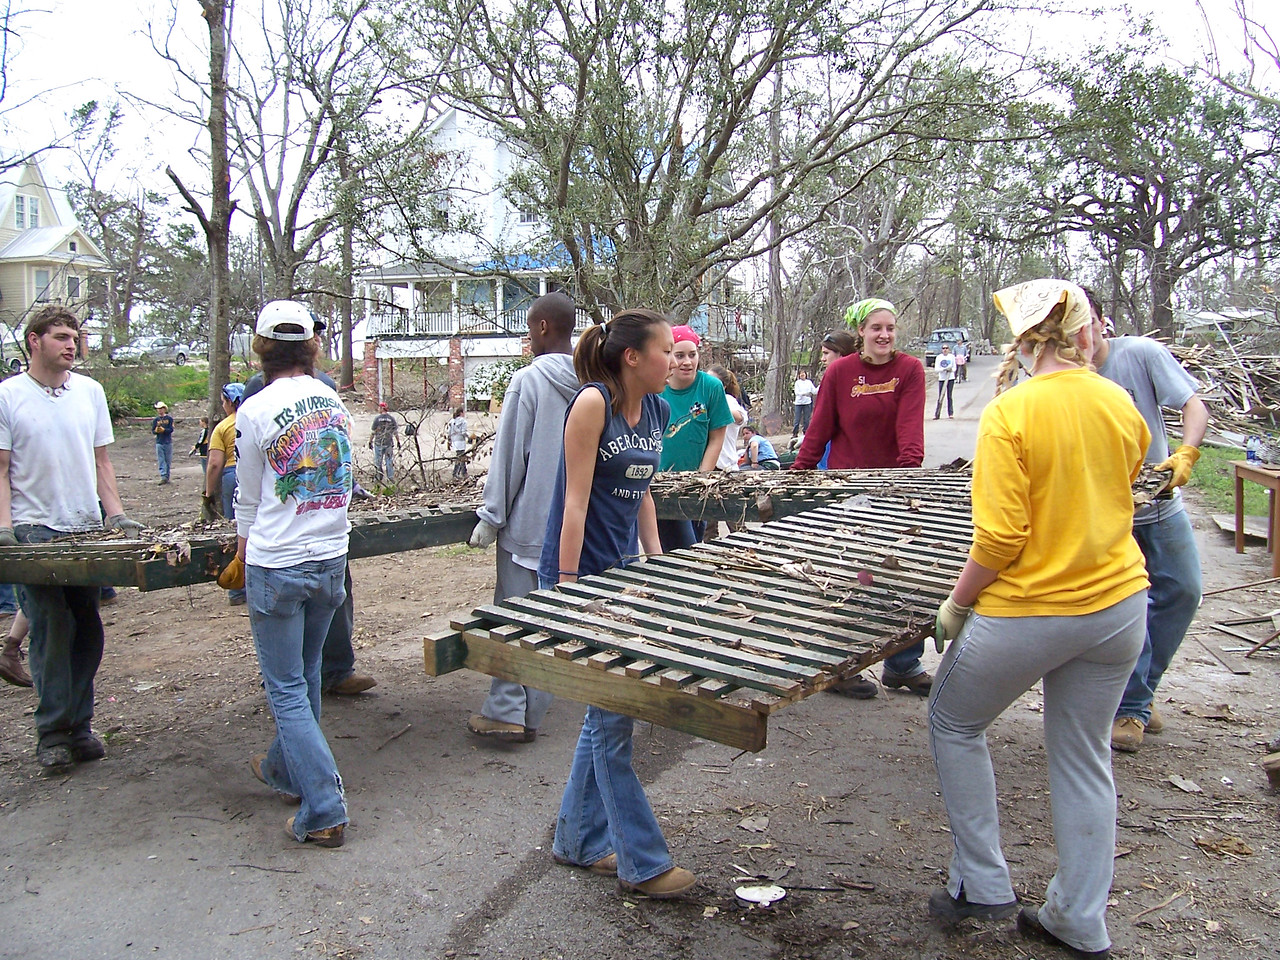 College and university students team-up to remove heavy debris left behind from Hurricane Katrina. They are participating in 'What a Relief', an opportunity for students and others in campus communities to help survivors of the 2005 hurricane season recover.